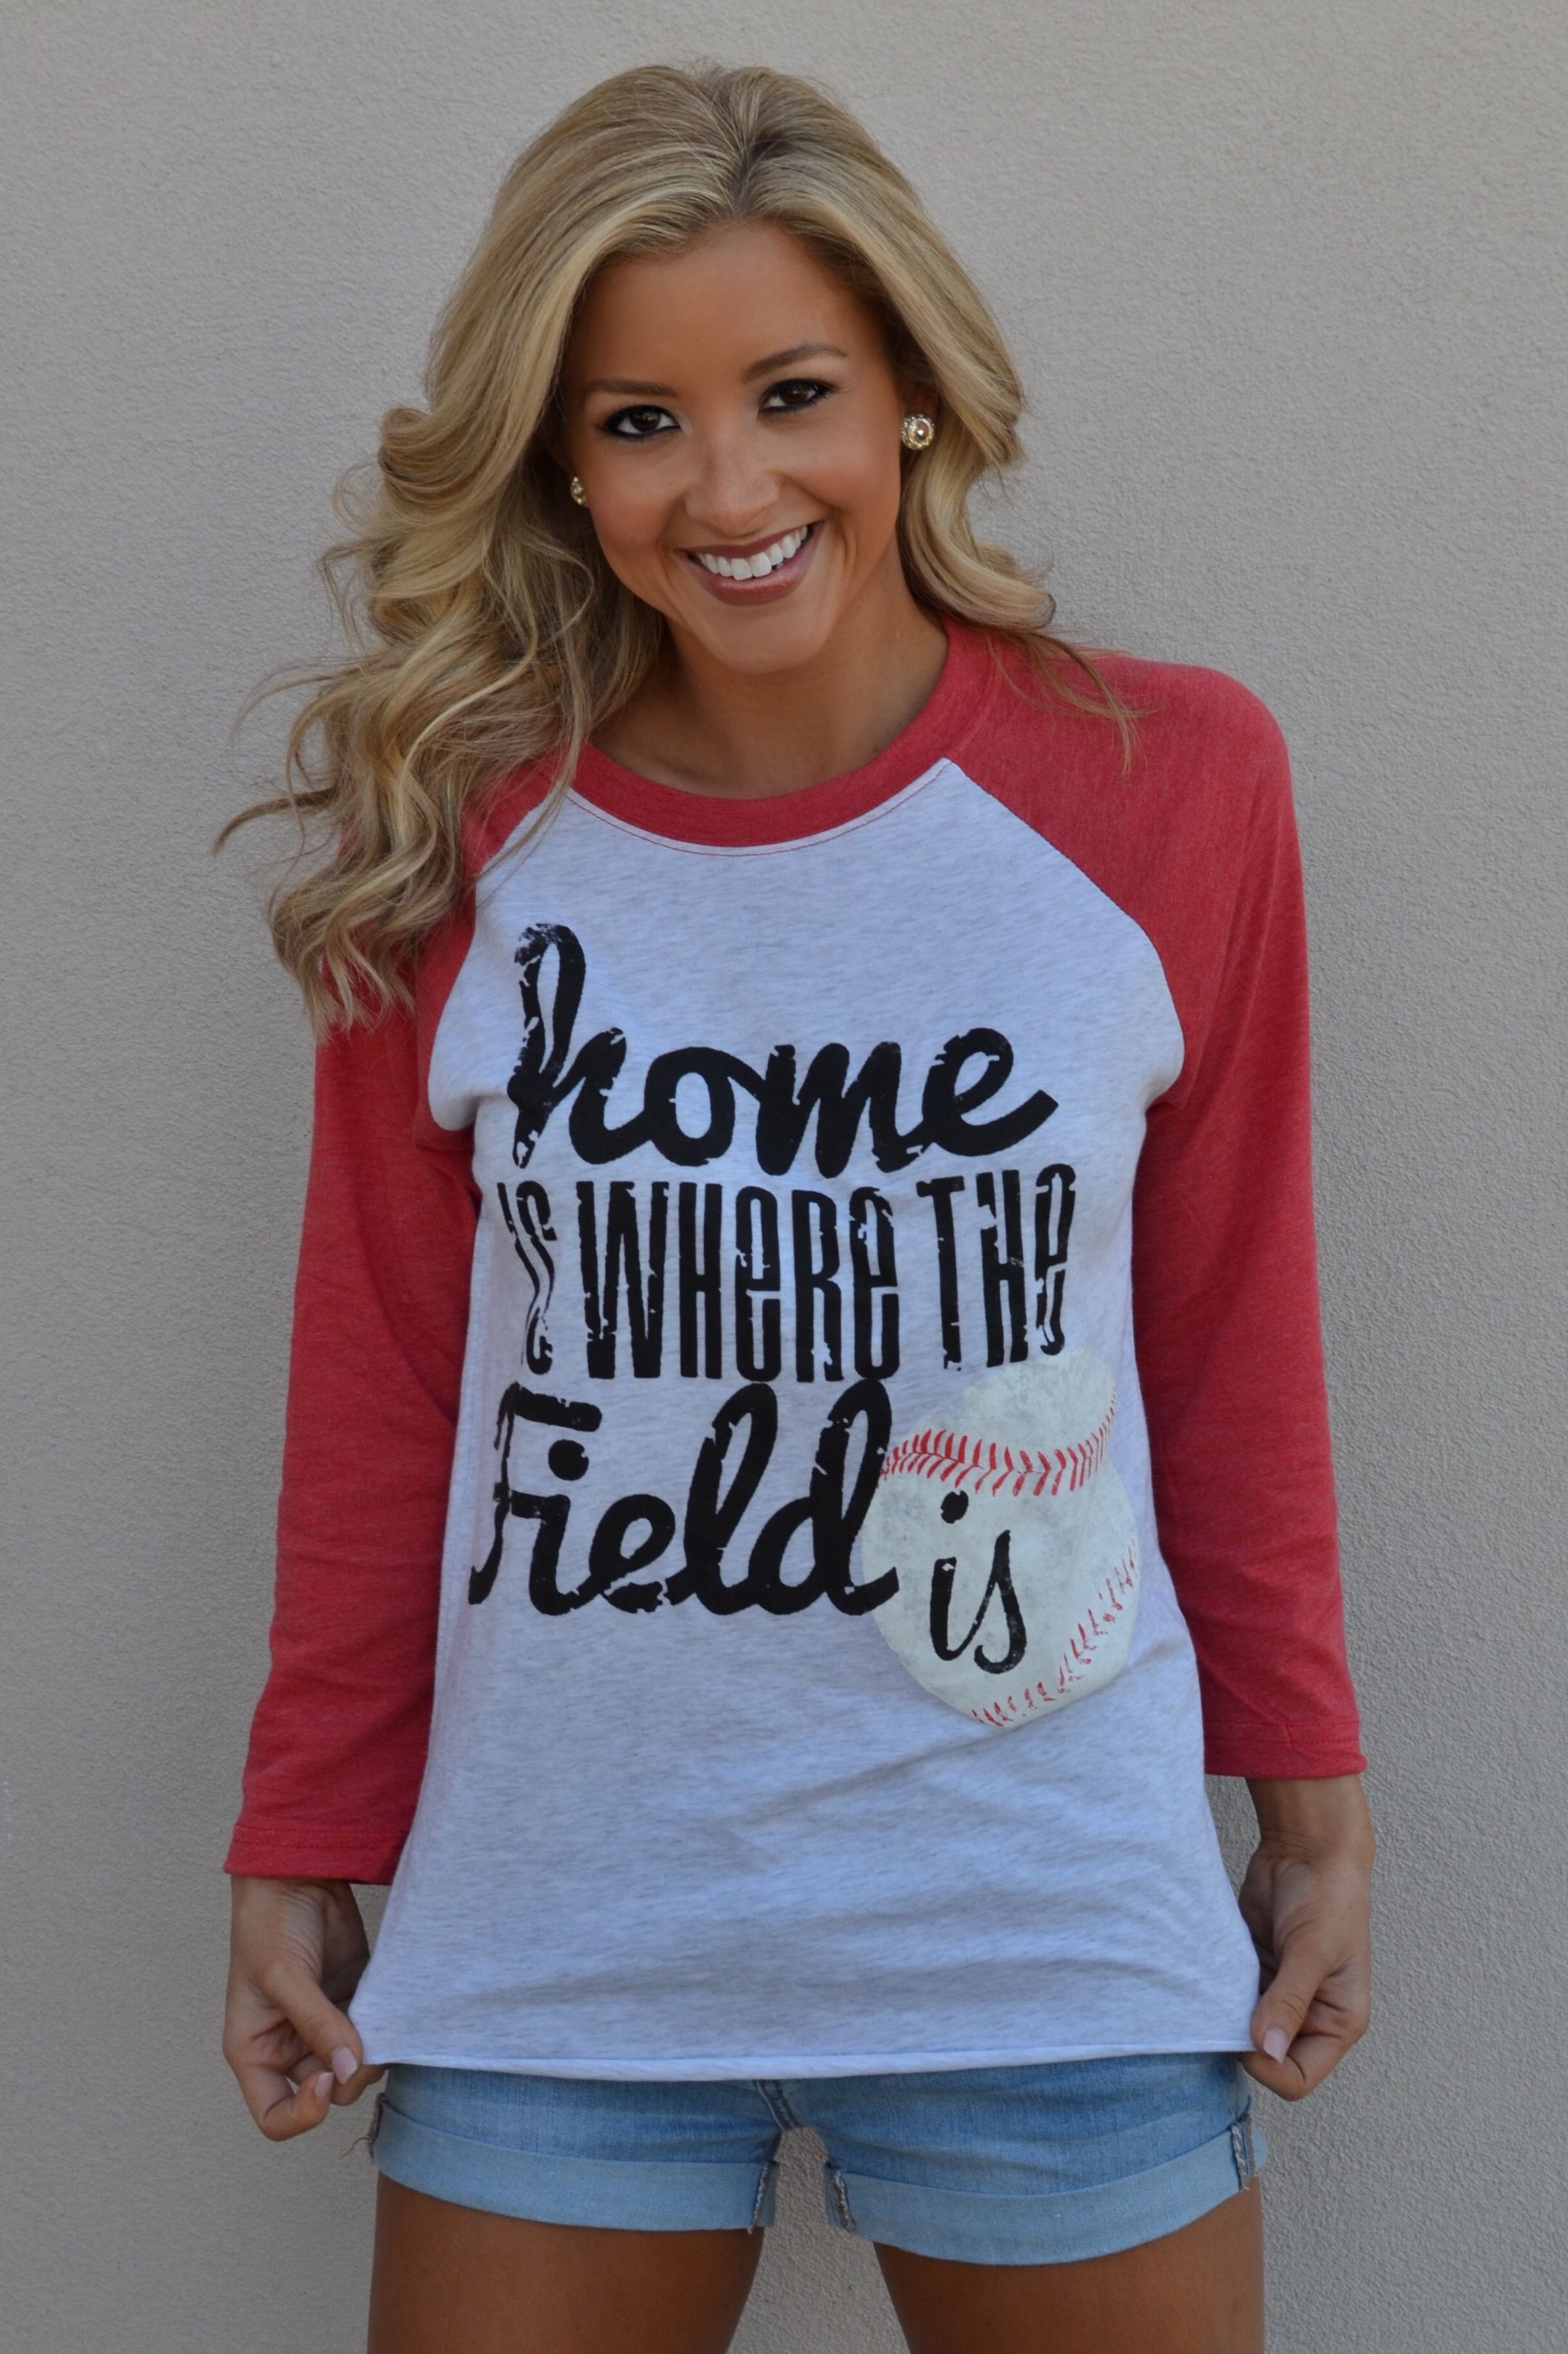 Design your own t shirt lesson plan - Lessons I Learned From My Life From The Play Field Is Powerfully Conveyed In This Tee Shirt